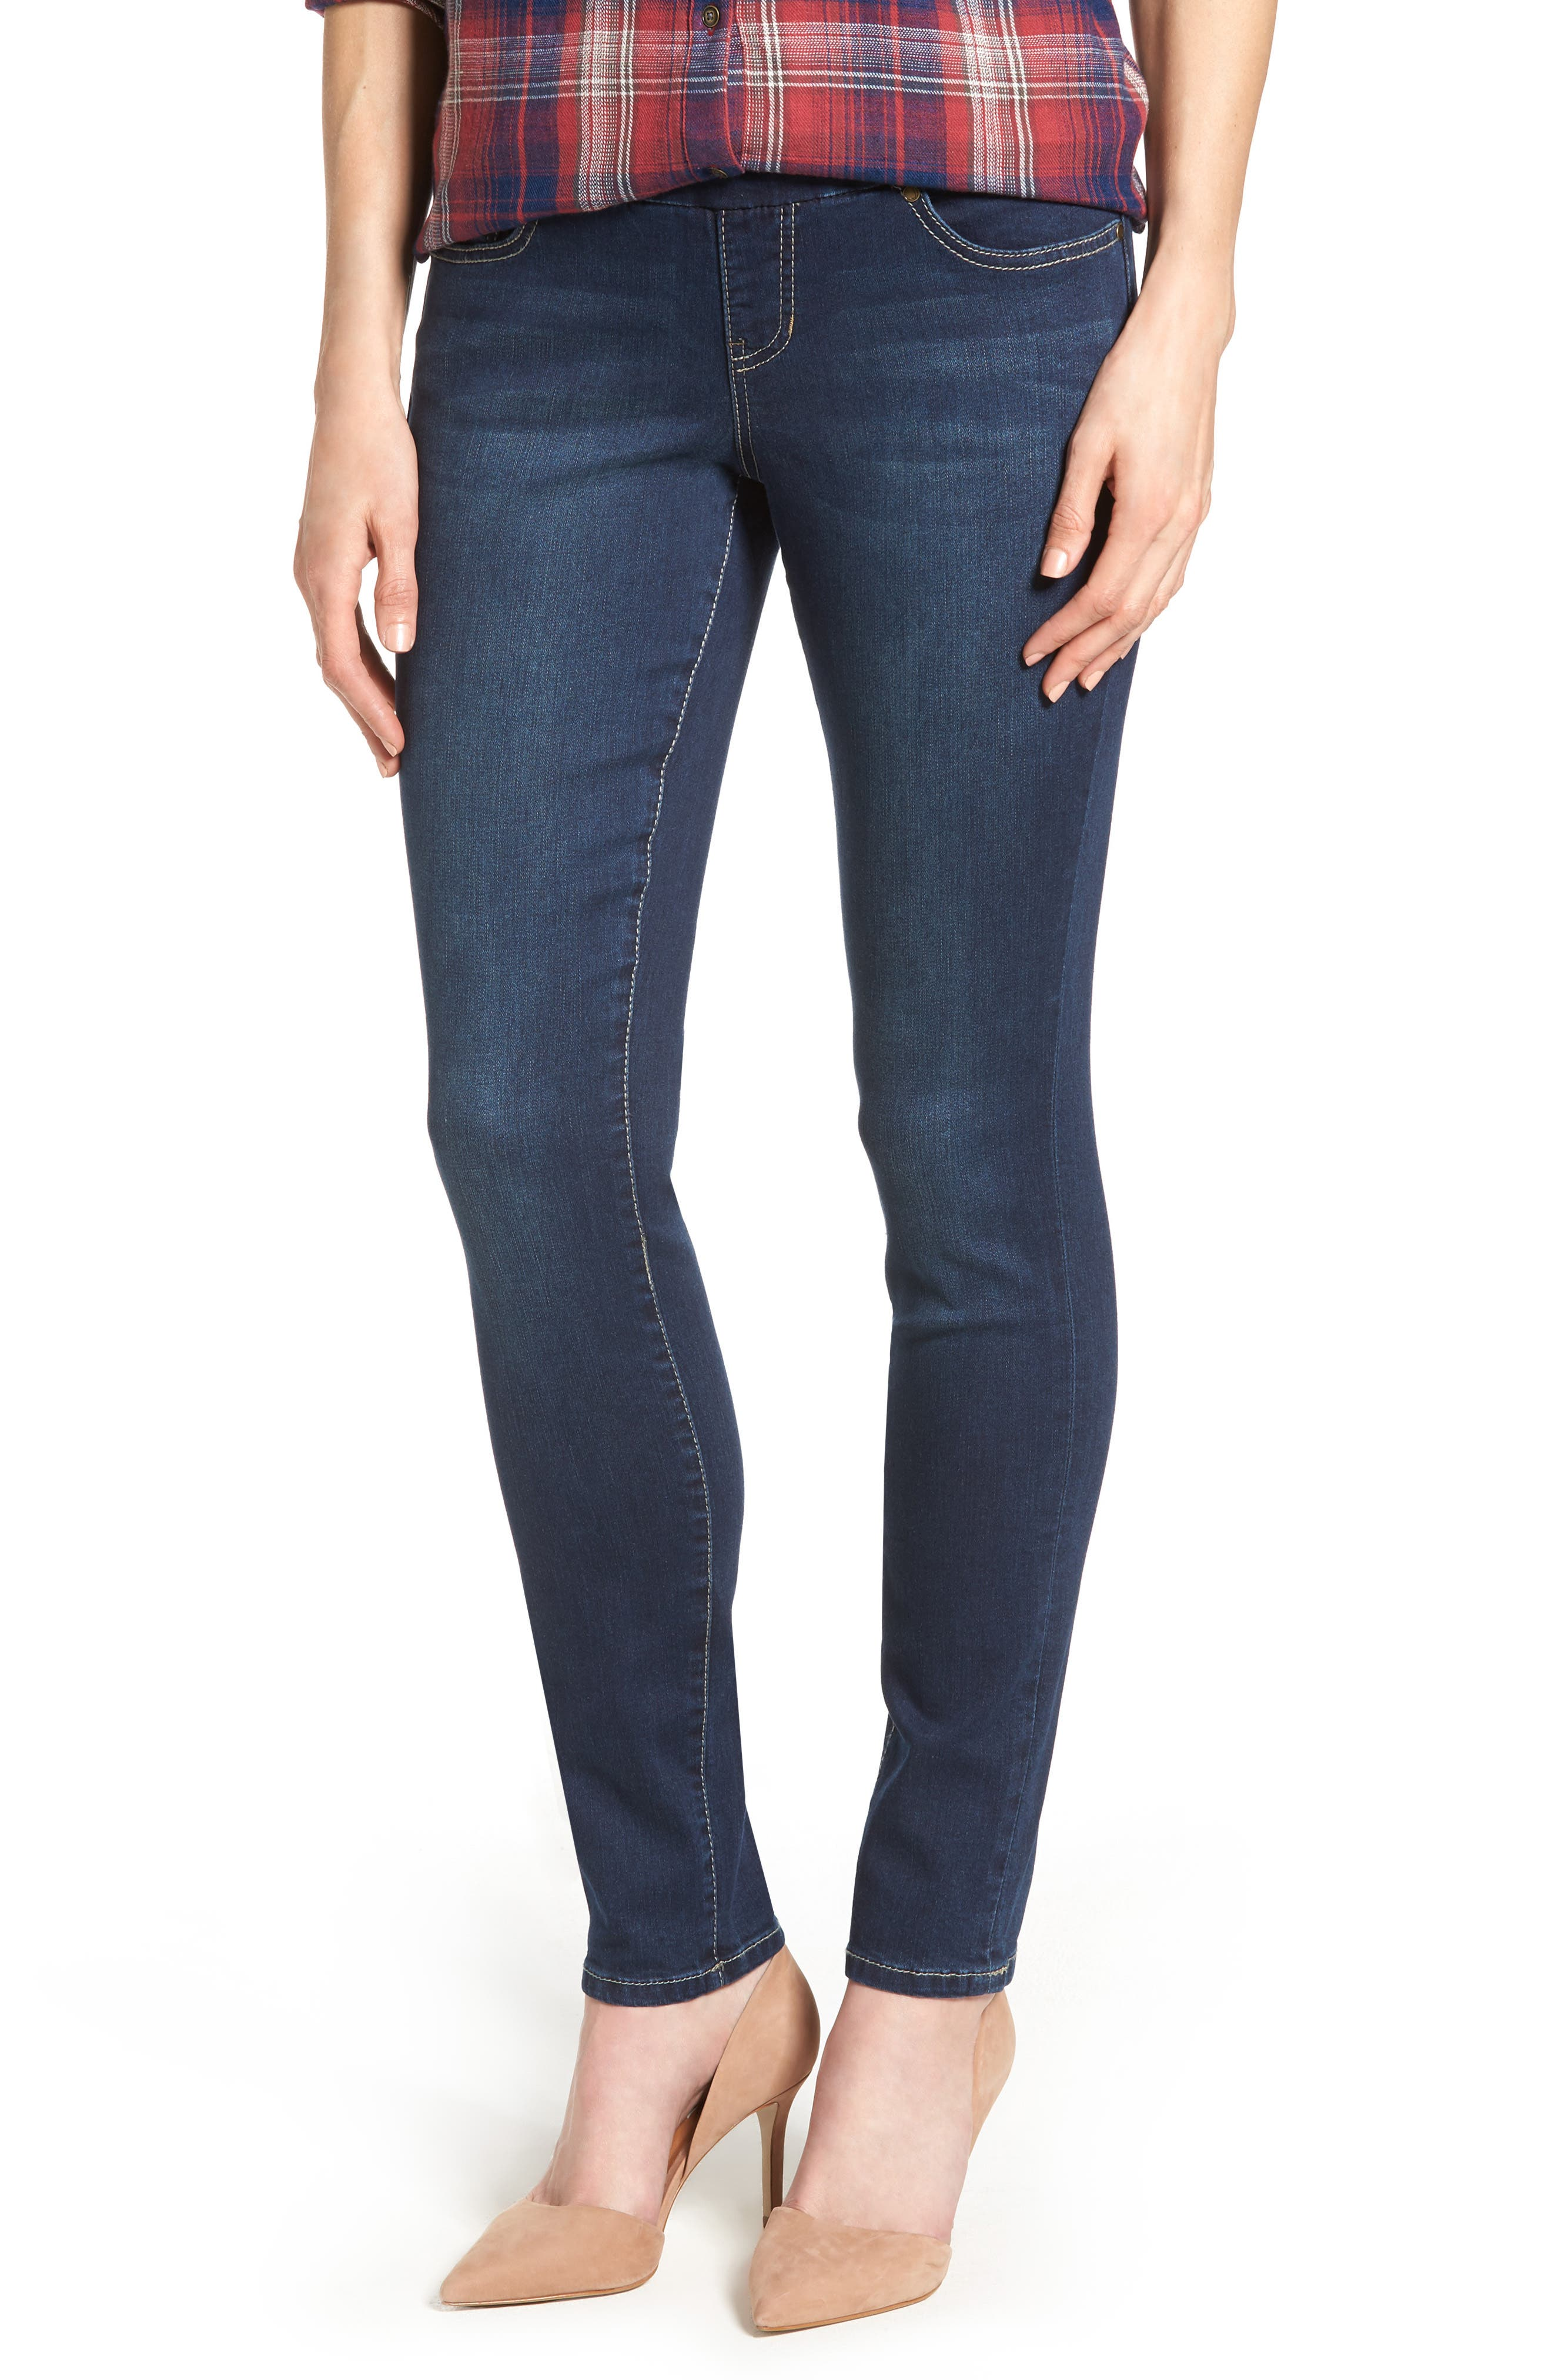 Women's Jag Jeans Nora Stretch Skinny Jeans